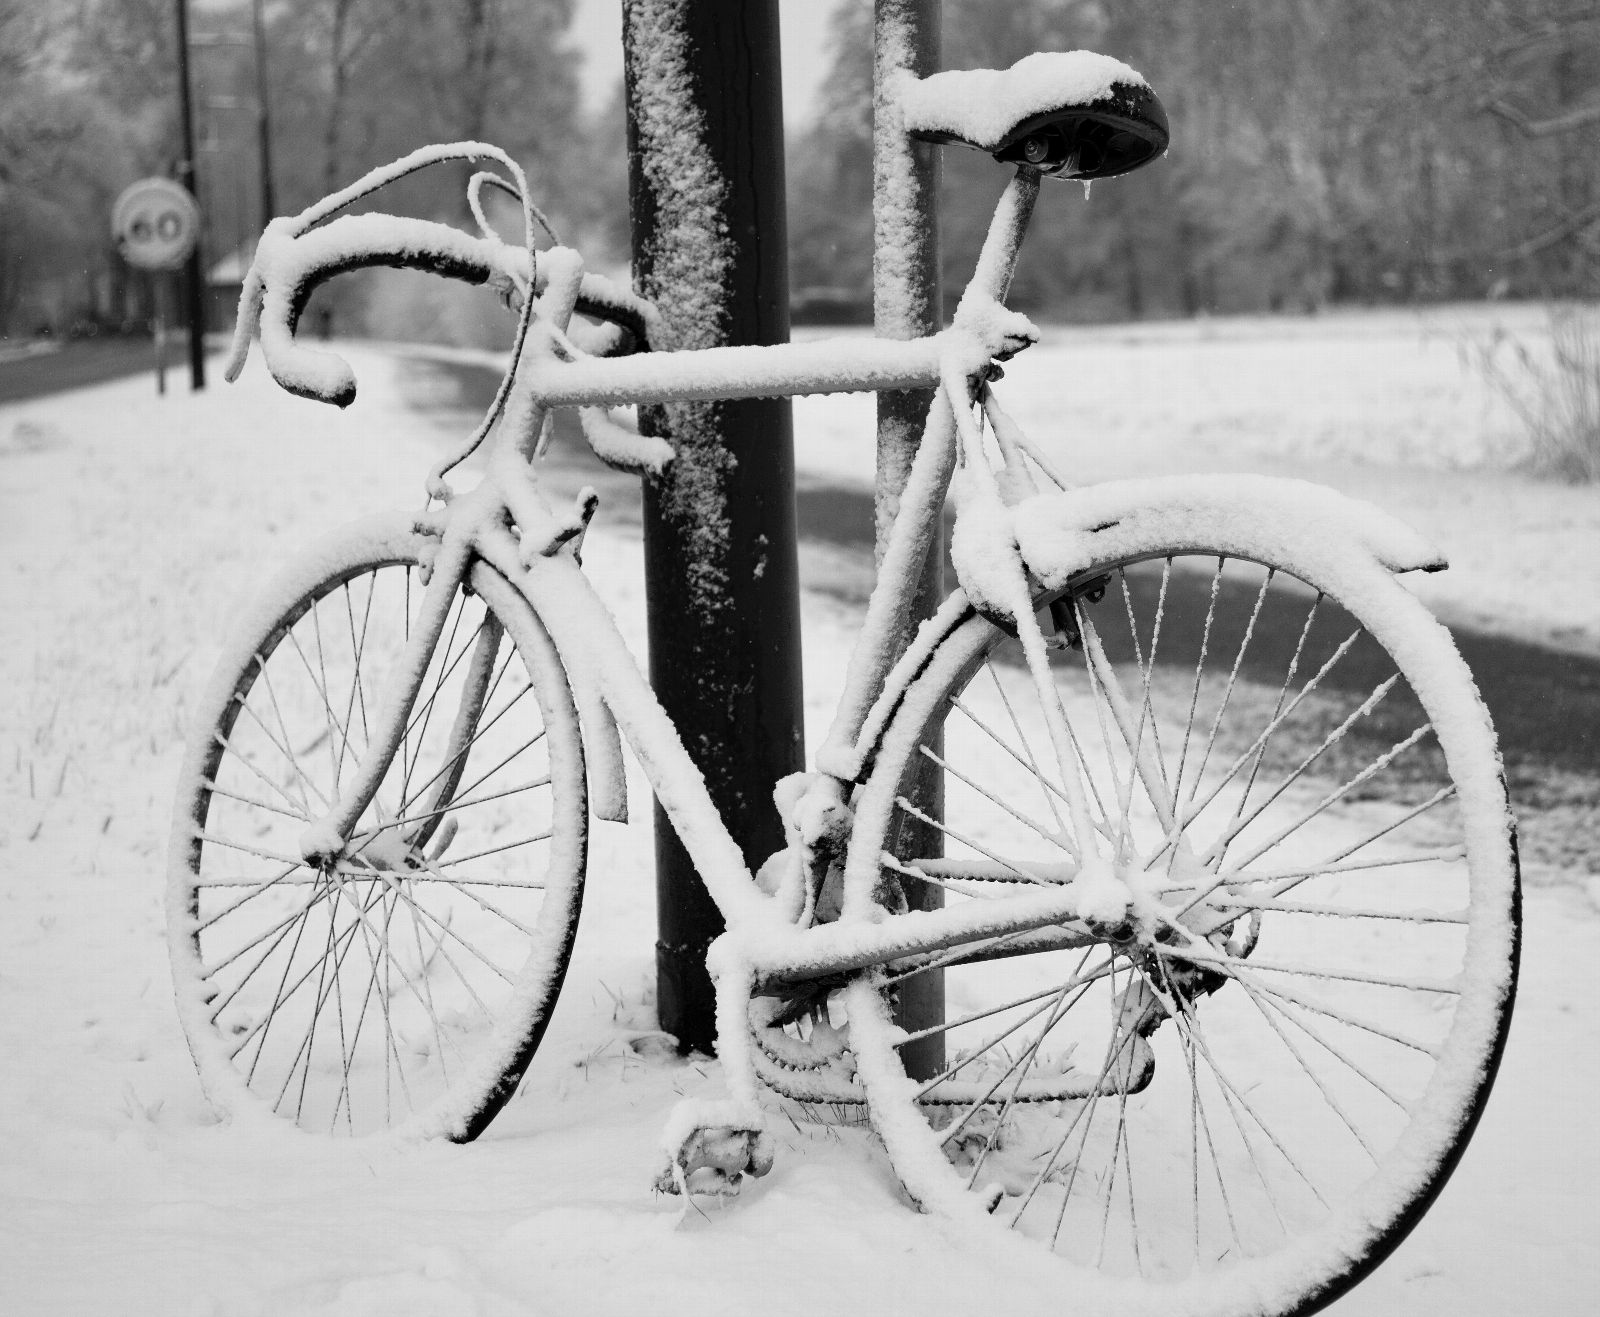 Bicycle Leaning Against Pole in Snow